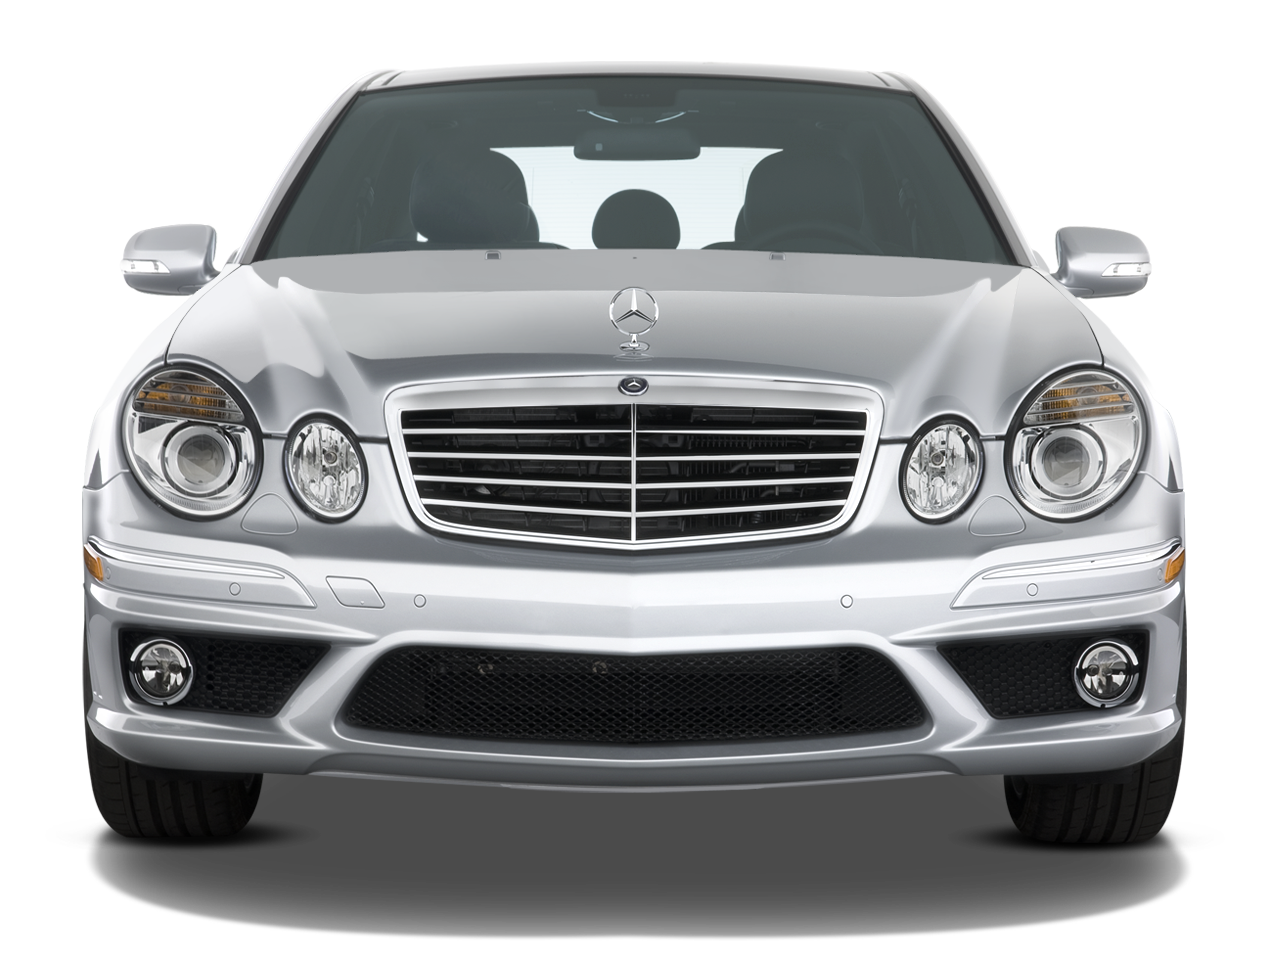 2009 mercedes benz e class 2008 2009 future cars sneak. Black Bedroom Furniture Sets. Home Design Ideas